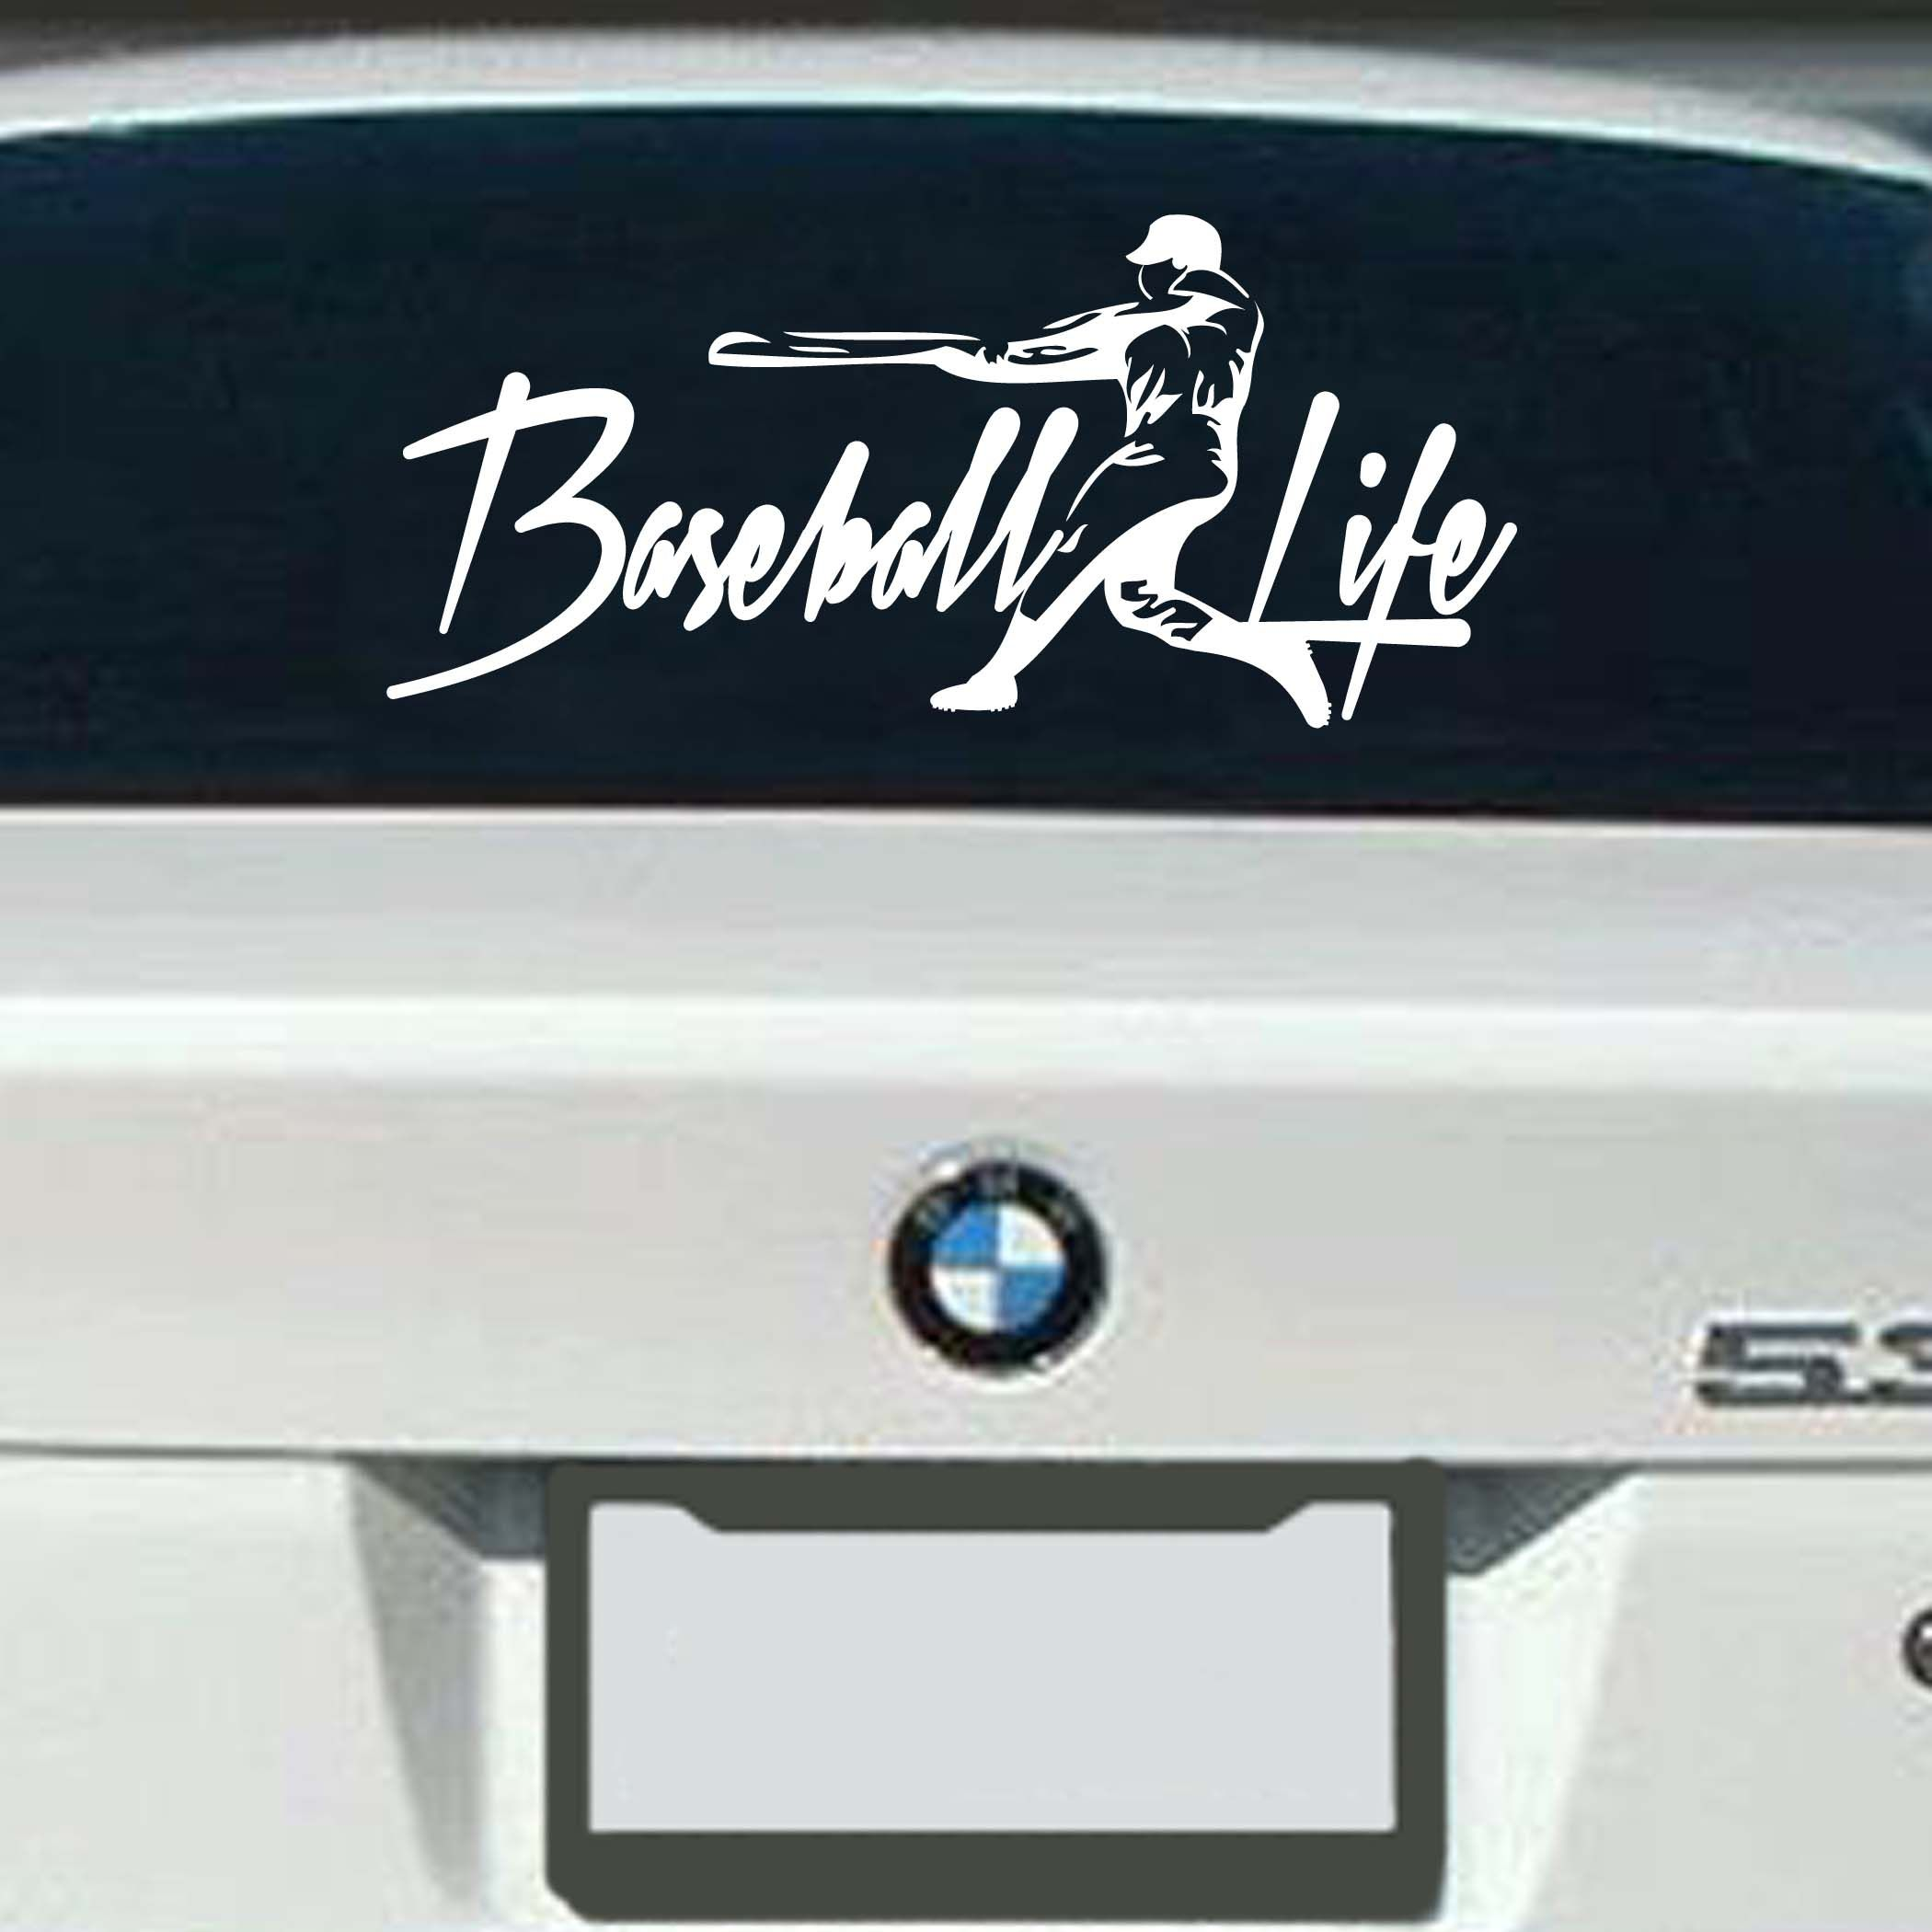 Baseball Life Decal Lifelineseriescom Baseball Pinterest - Custom car decals baseball